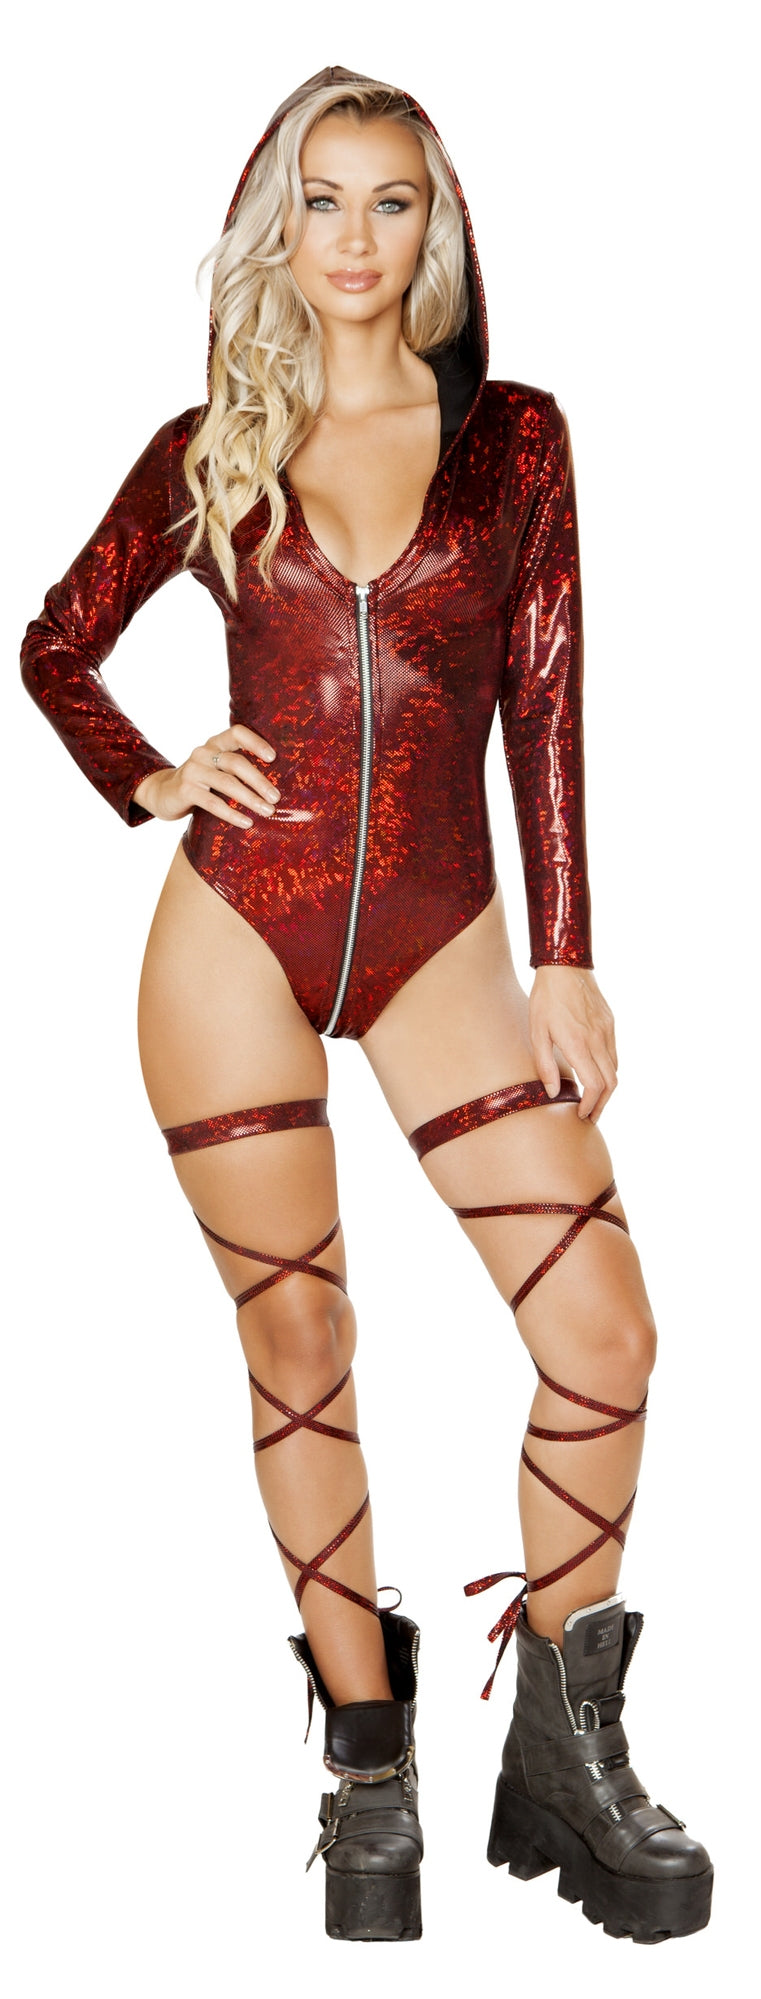 RM-3575 Long sleeve hooded bodysuit features red front